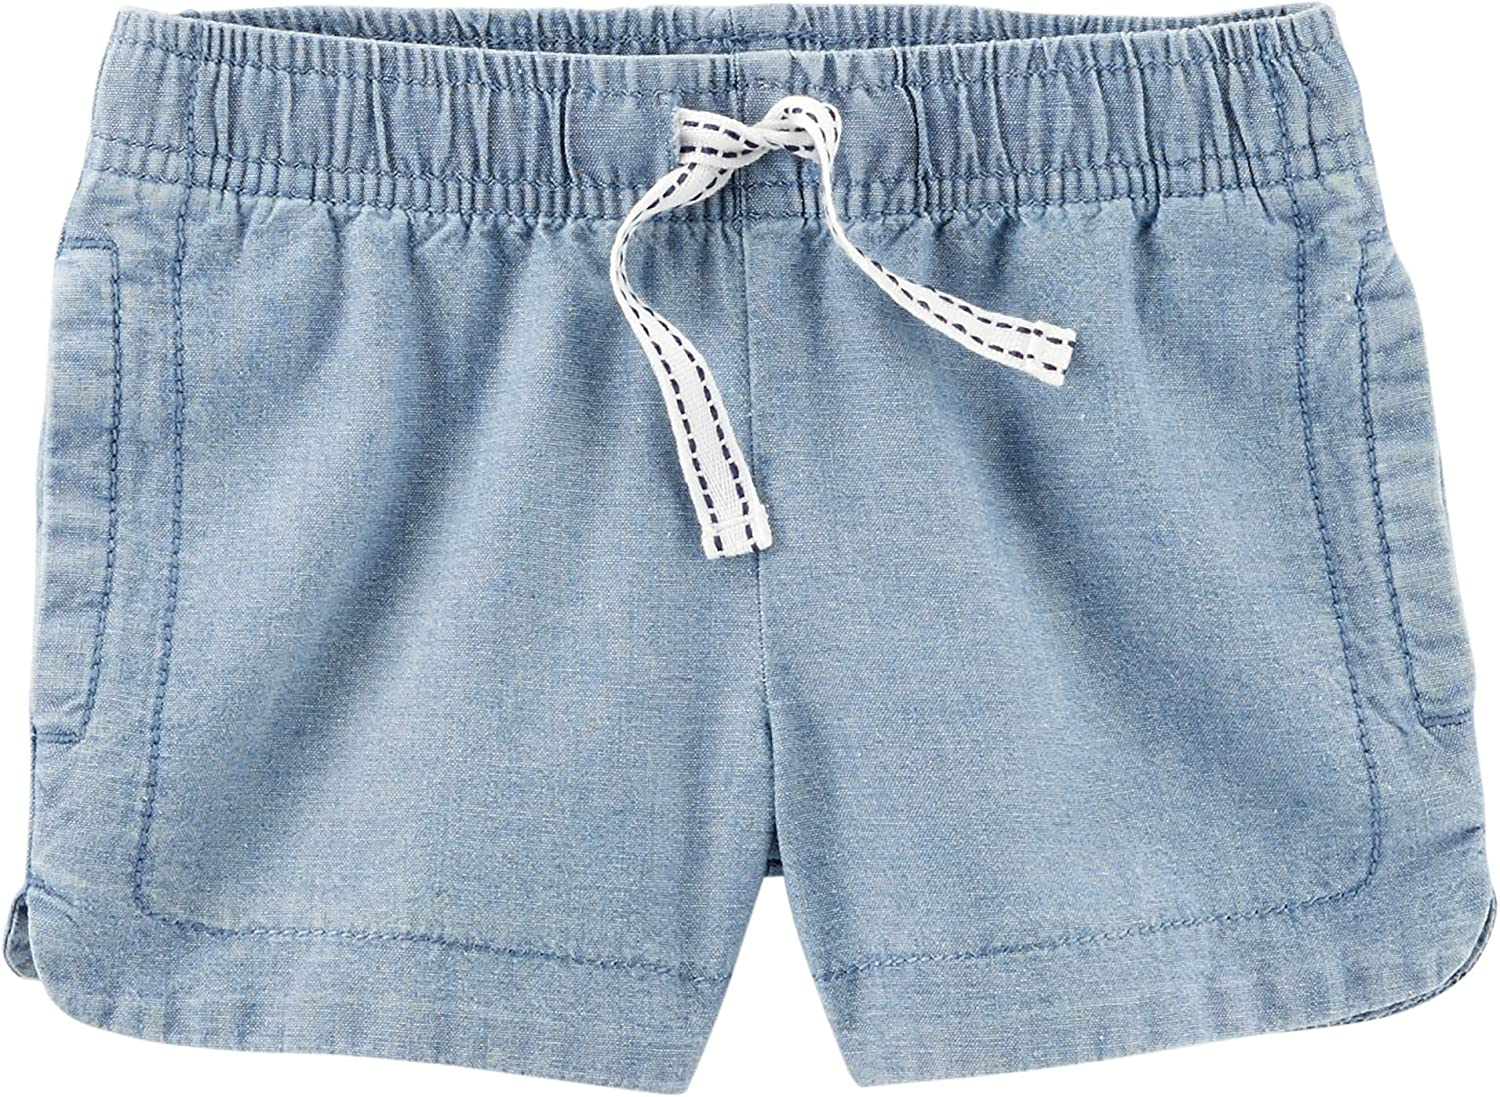 24 Months Carers Baby Girls Easy Pull-On Chambray Shorts